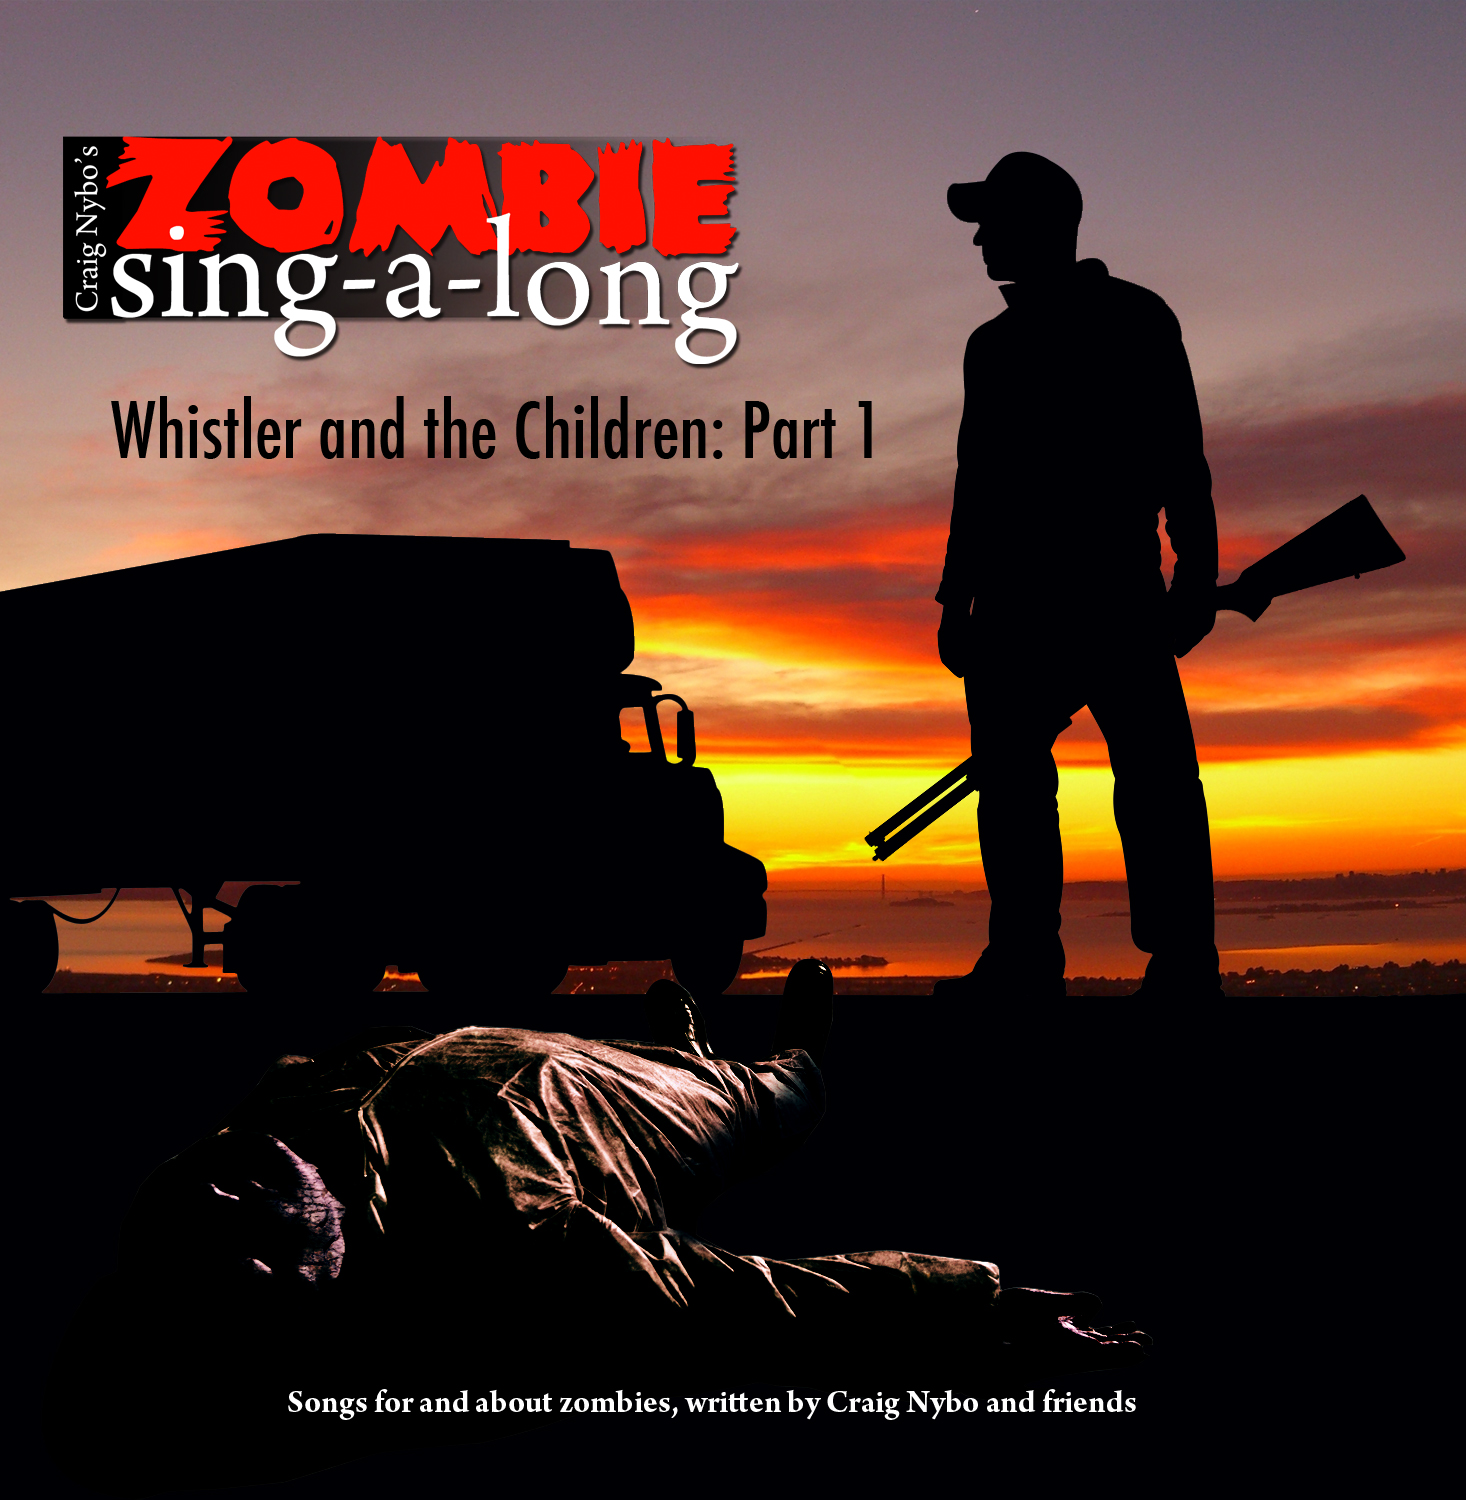 CD - Craig Nybo: Zombie Sing-a-Long: Whistler and the Children (Part 1)